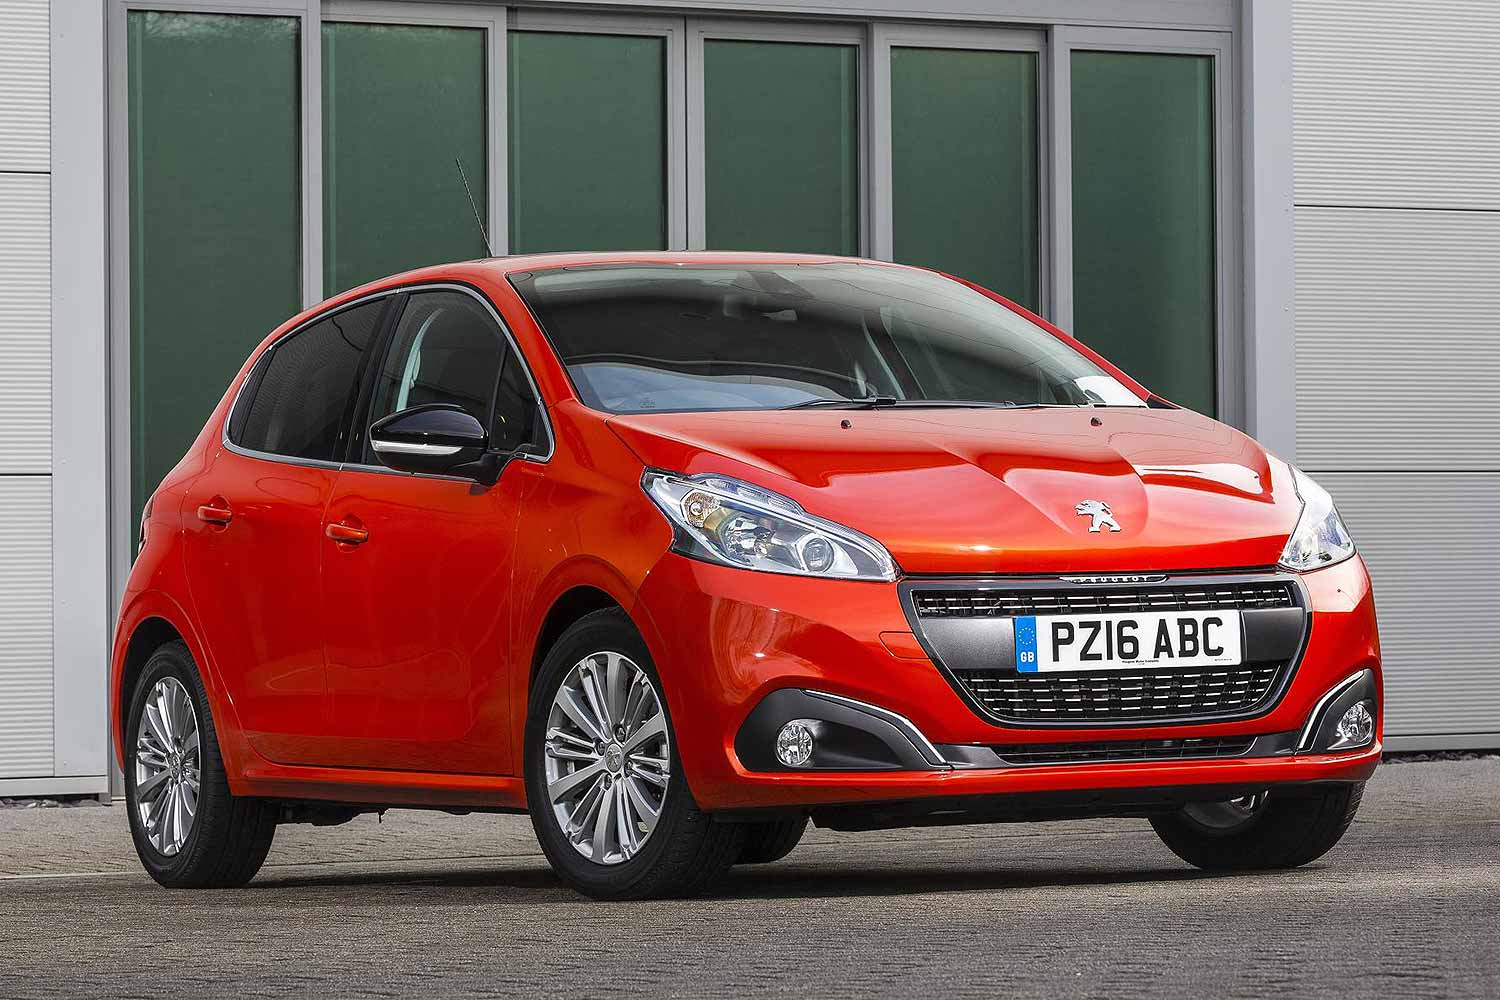 Two Models Share The Honour Of Being Uk S Most Fuel Efficient Car On First Up Is Sel Ed Peugeot 208 Which In Latest Facelifted 1 6